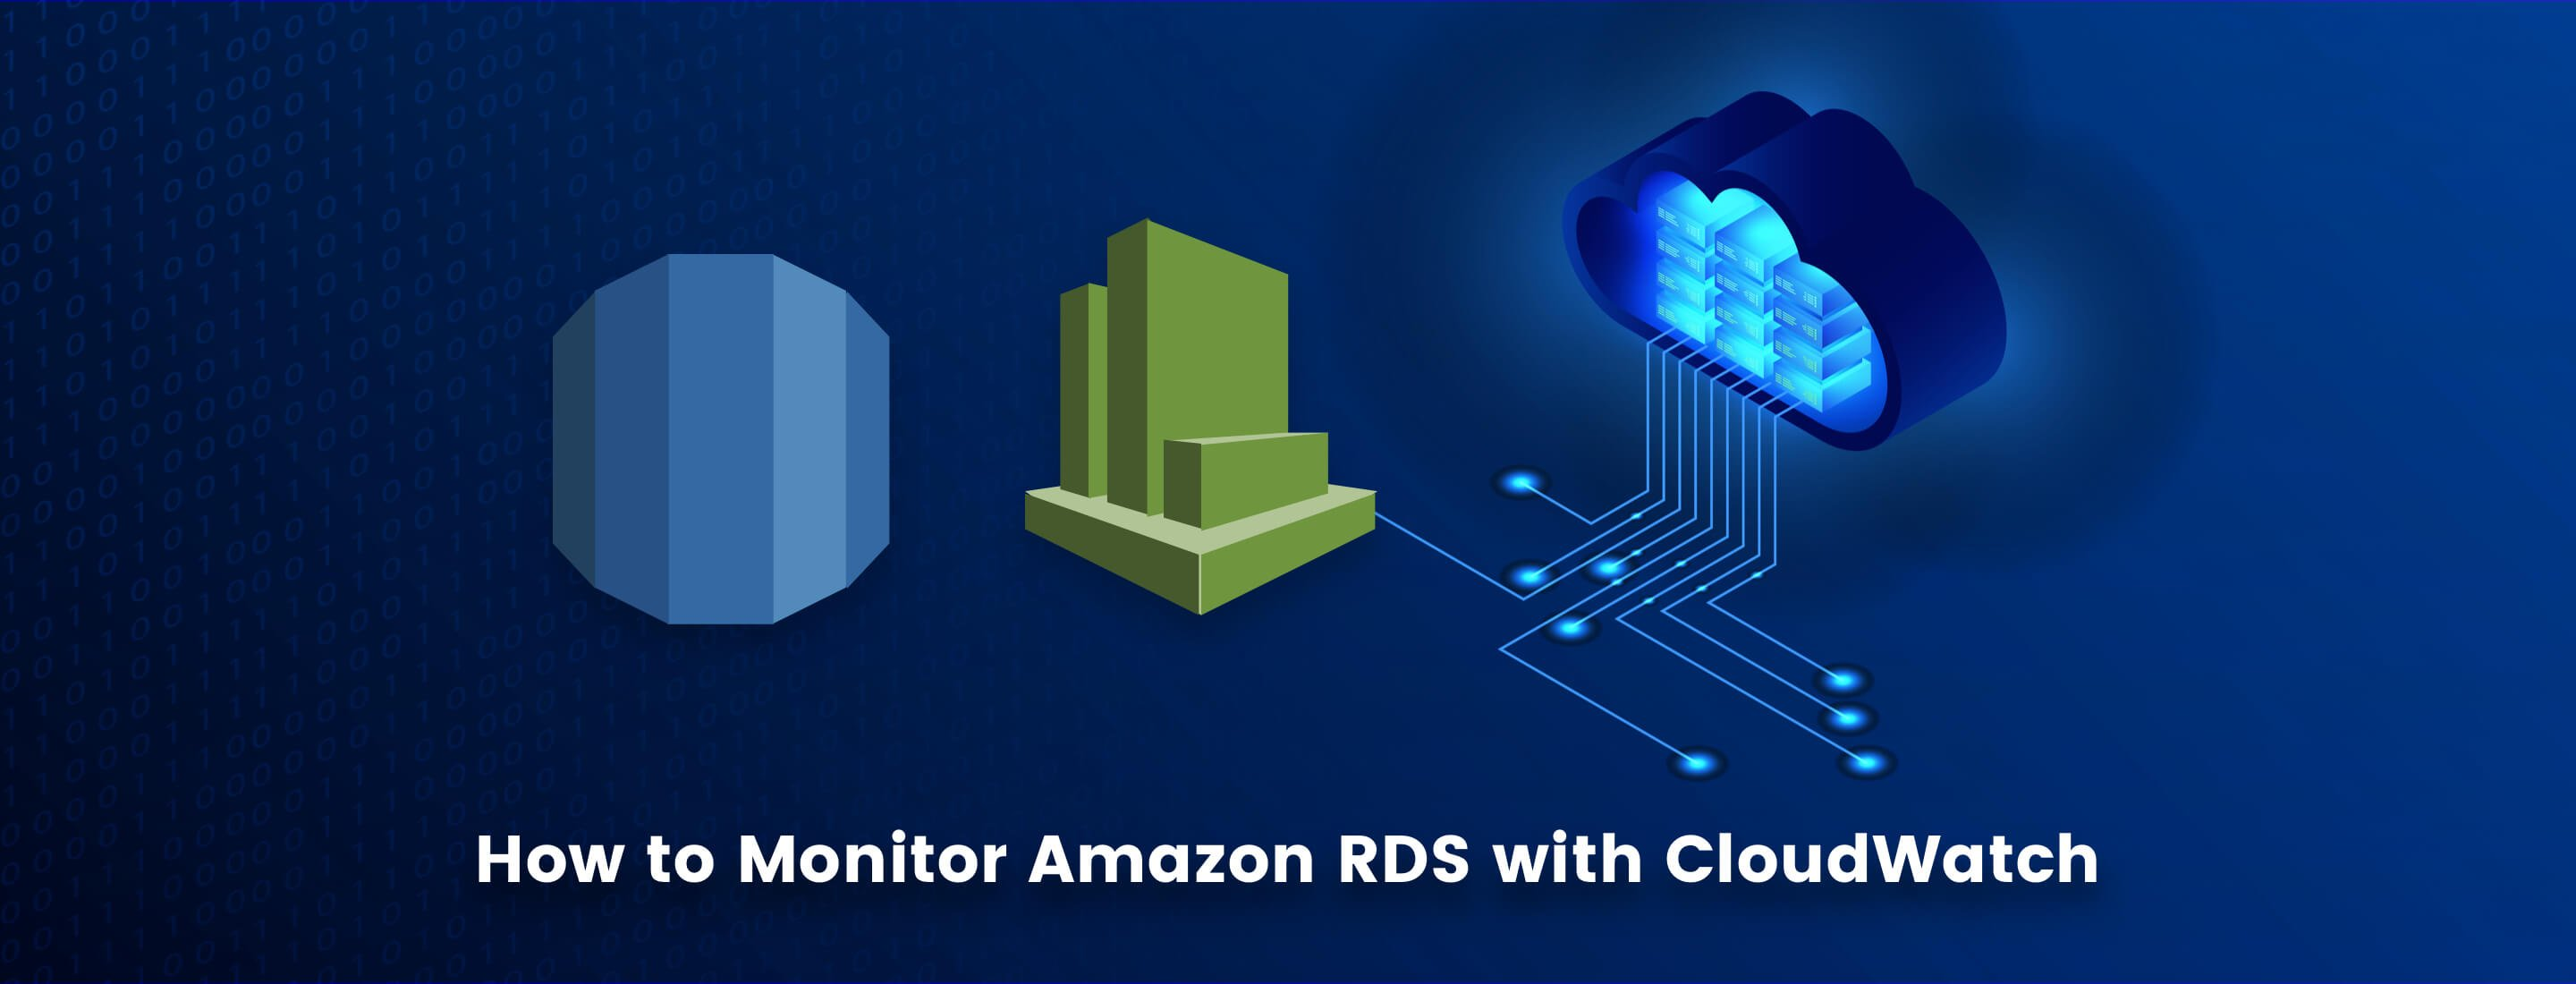 How to Monitor Amazon RDS with CloudWatch